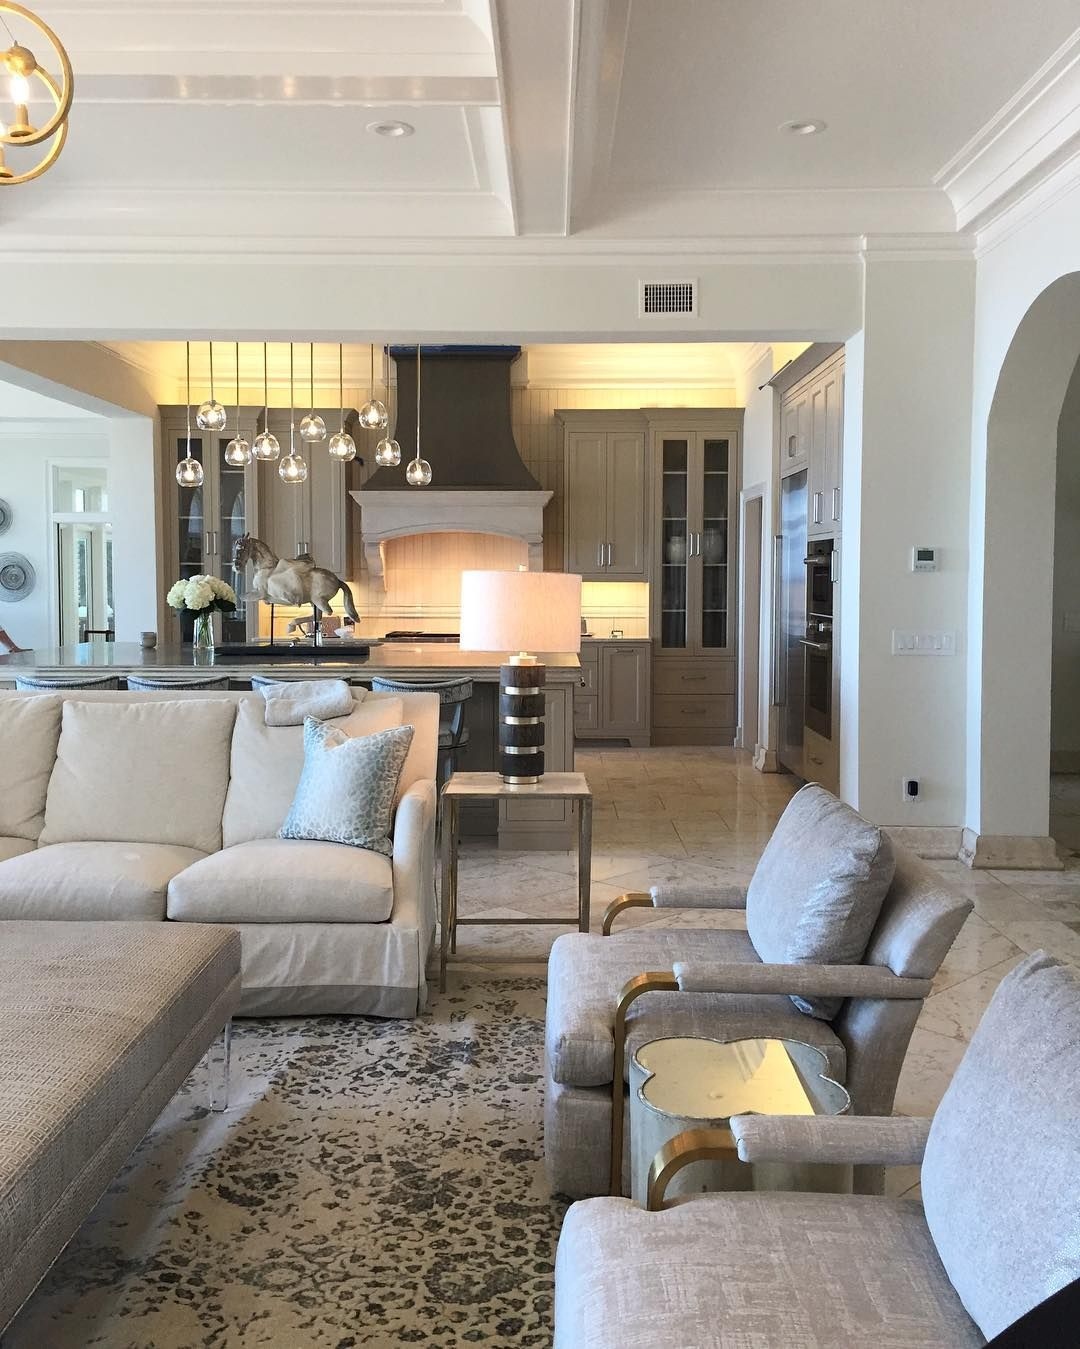 A Beautiful Neutral Color Scheme Keeps The Open Concept Living Room And Kitchen Easy On Interior Design Color Coastal Interiors Design Open Concept Living Room